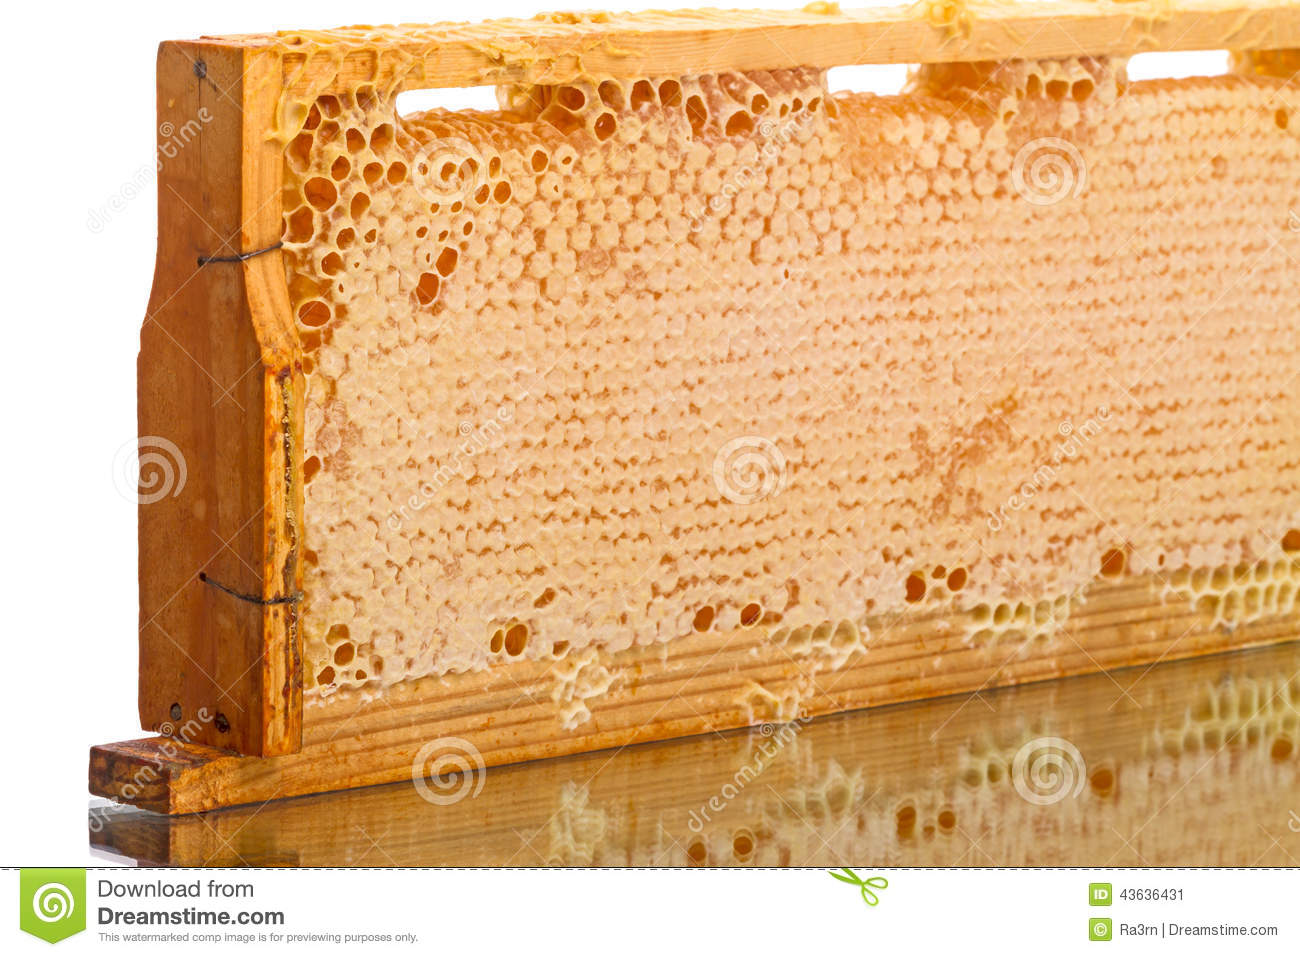 Cells of the hive with honey